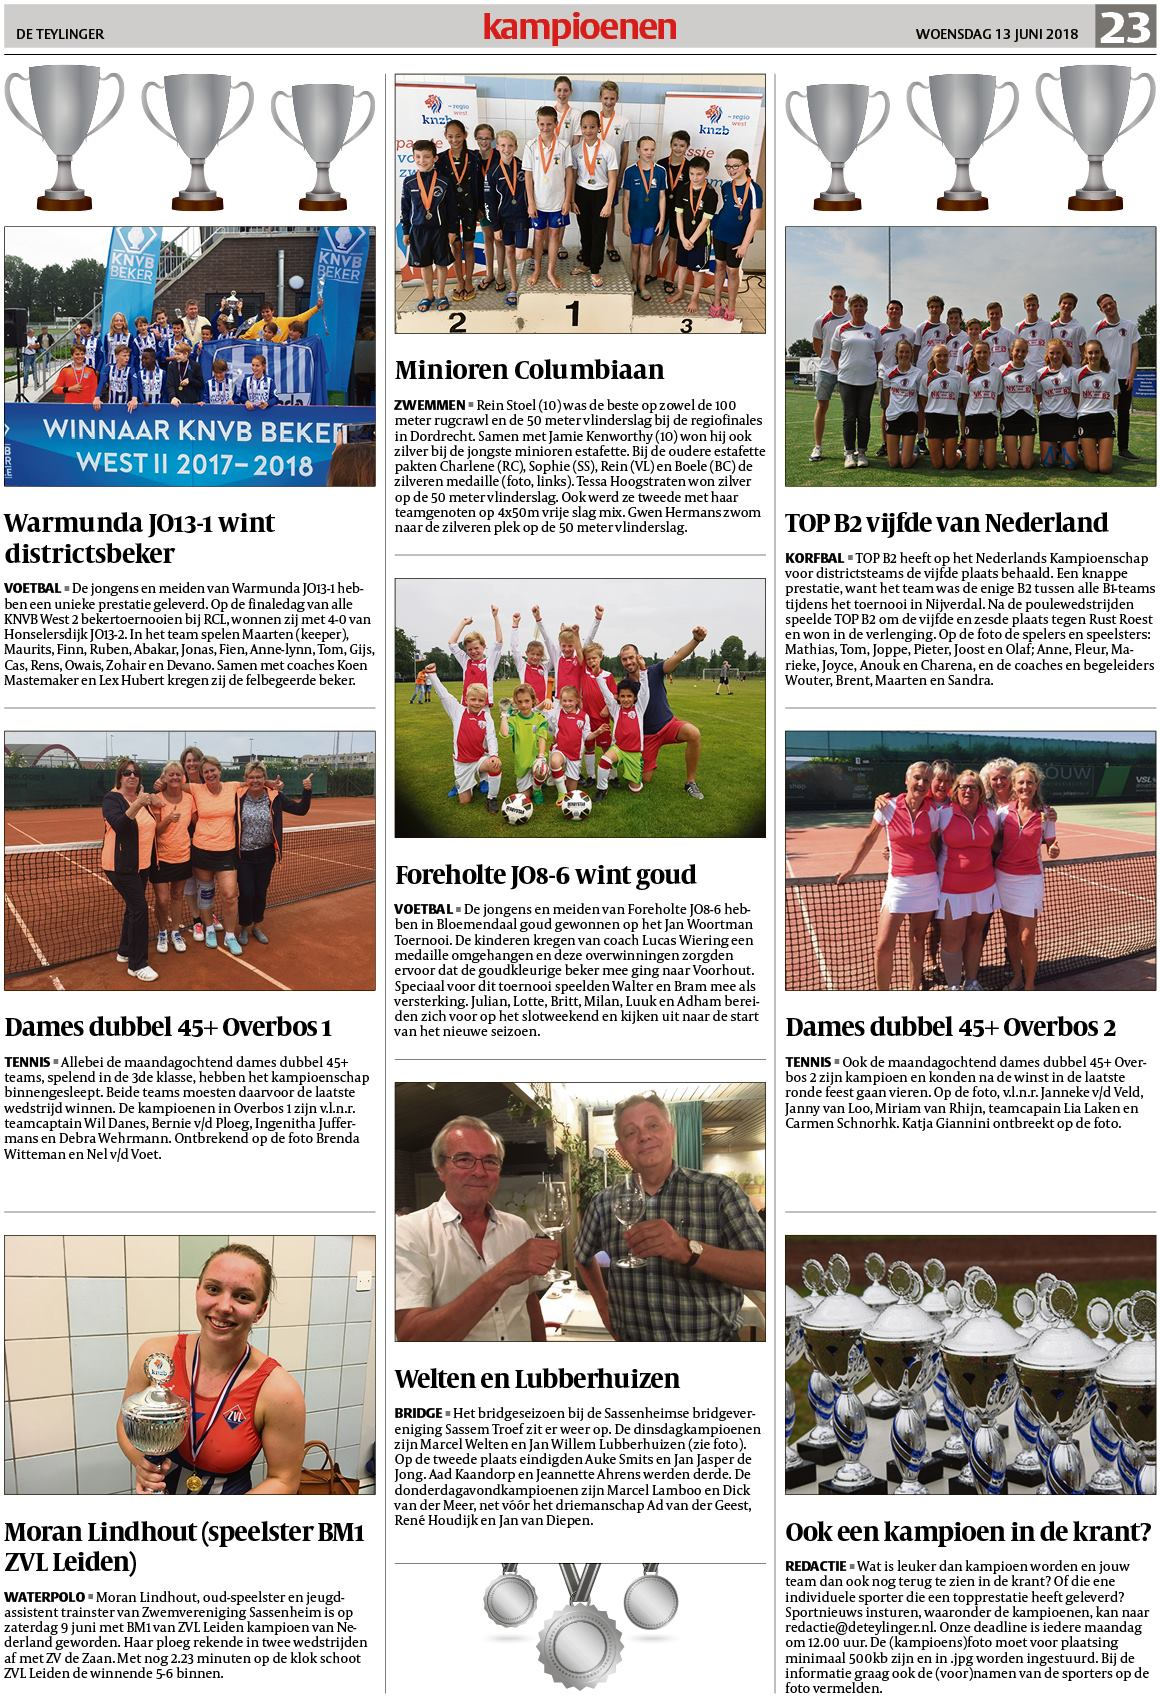 Craigslist sex dating site